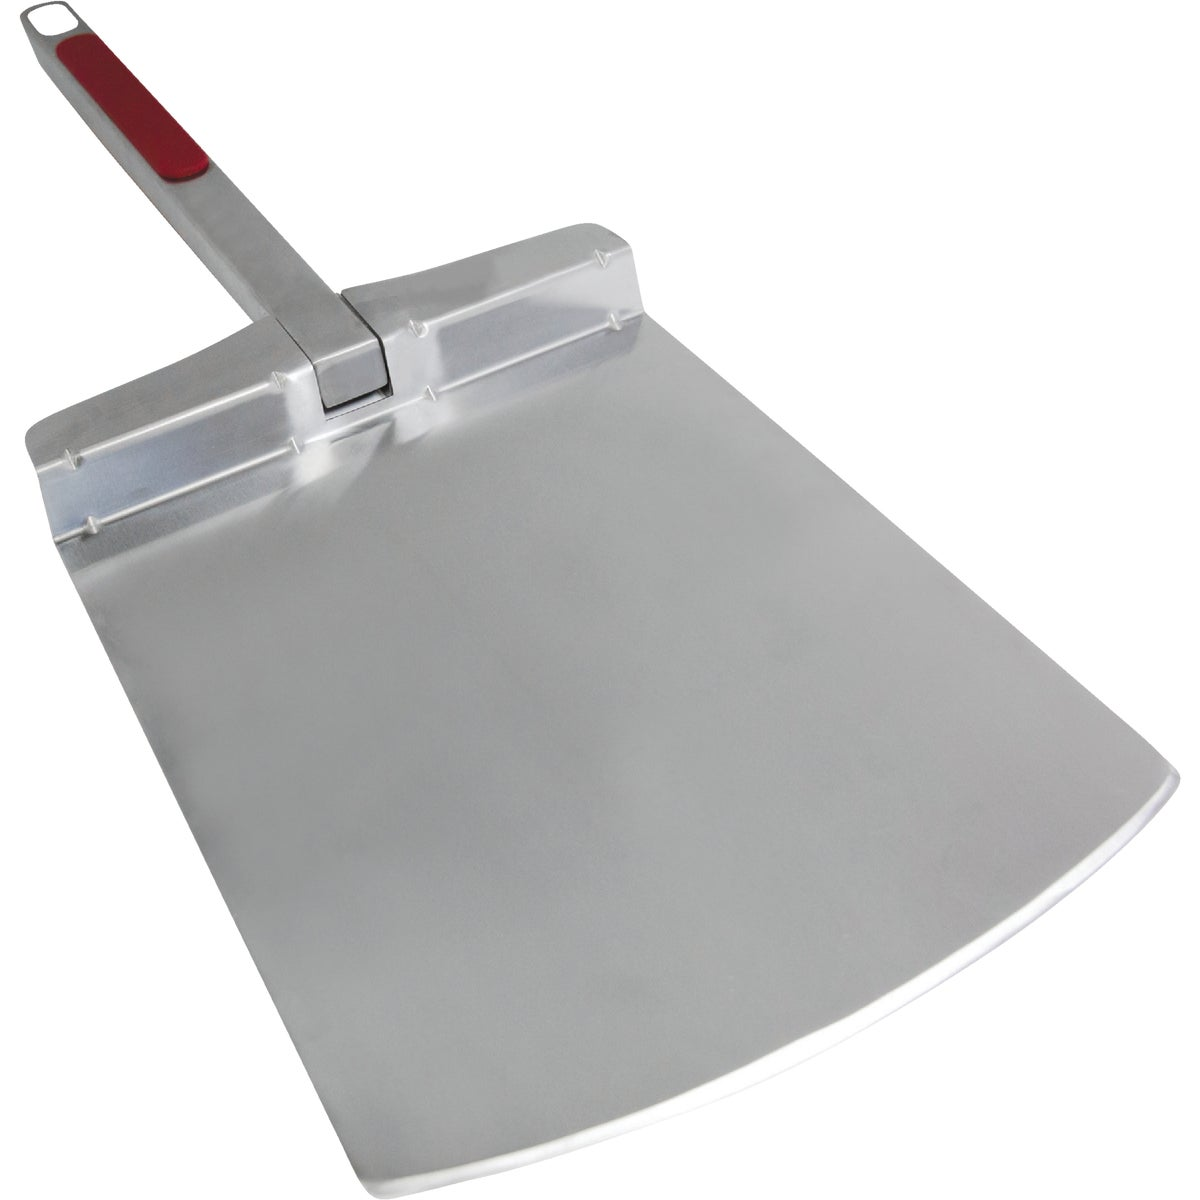 FOLDING PIZZA TURNER - 98159 by Onward Multi Corp  D